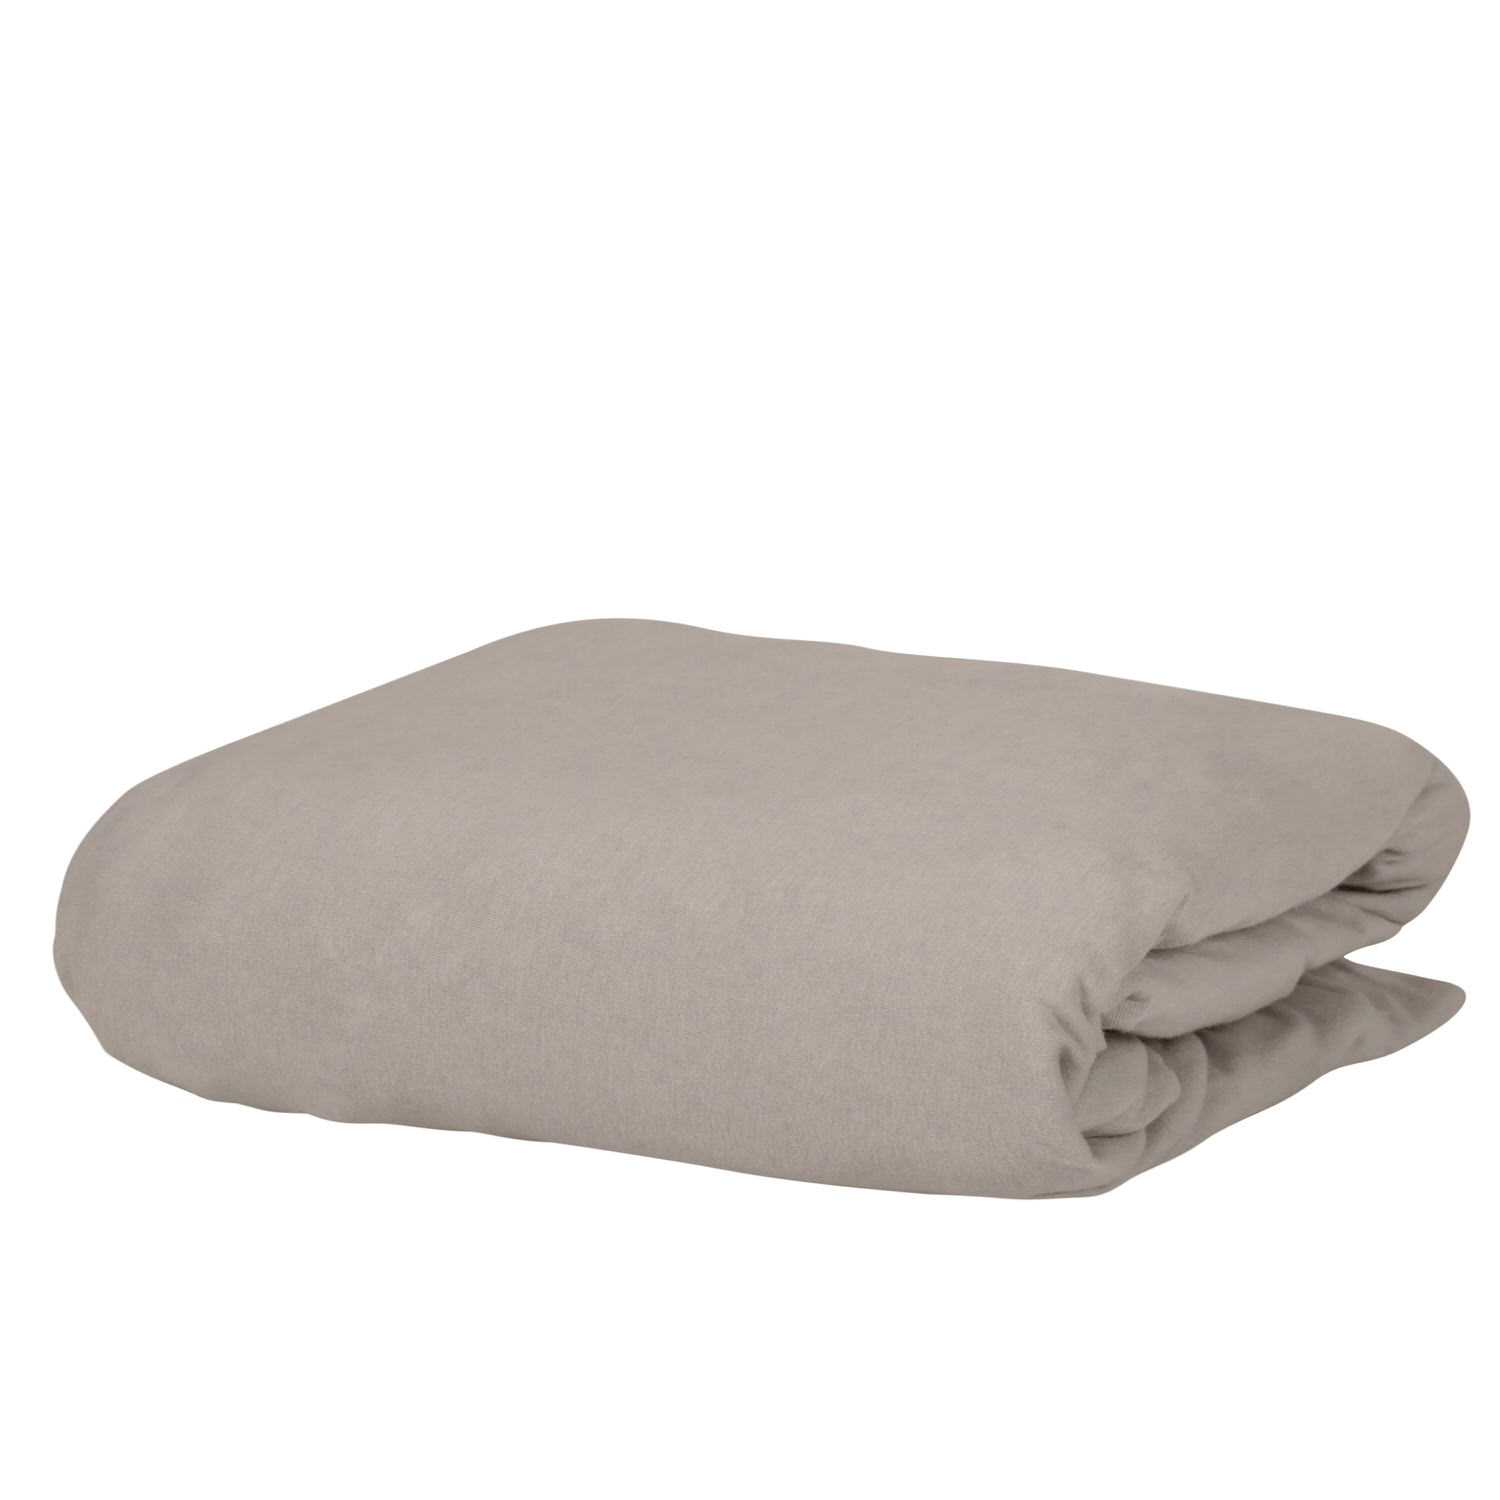 Cotton Spandex Jersey Beige Fitted Sheet With Antibacterial Treatment